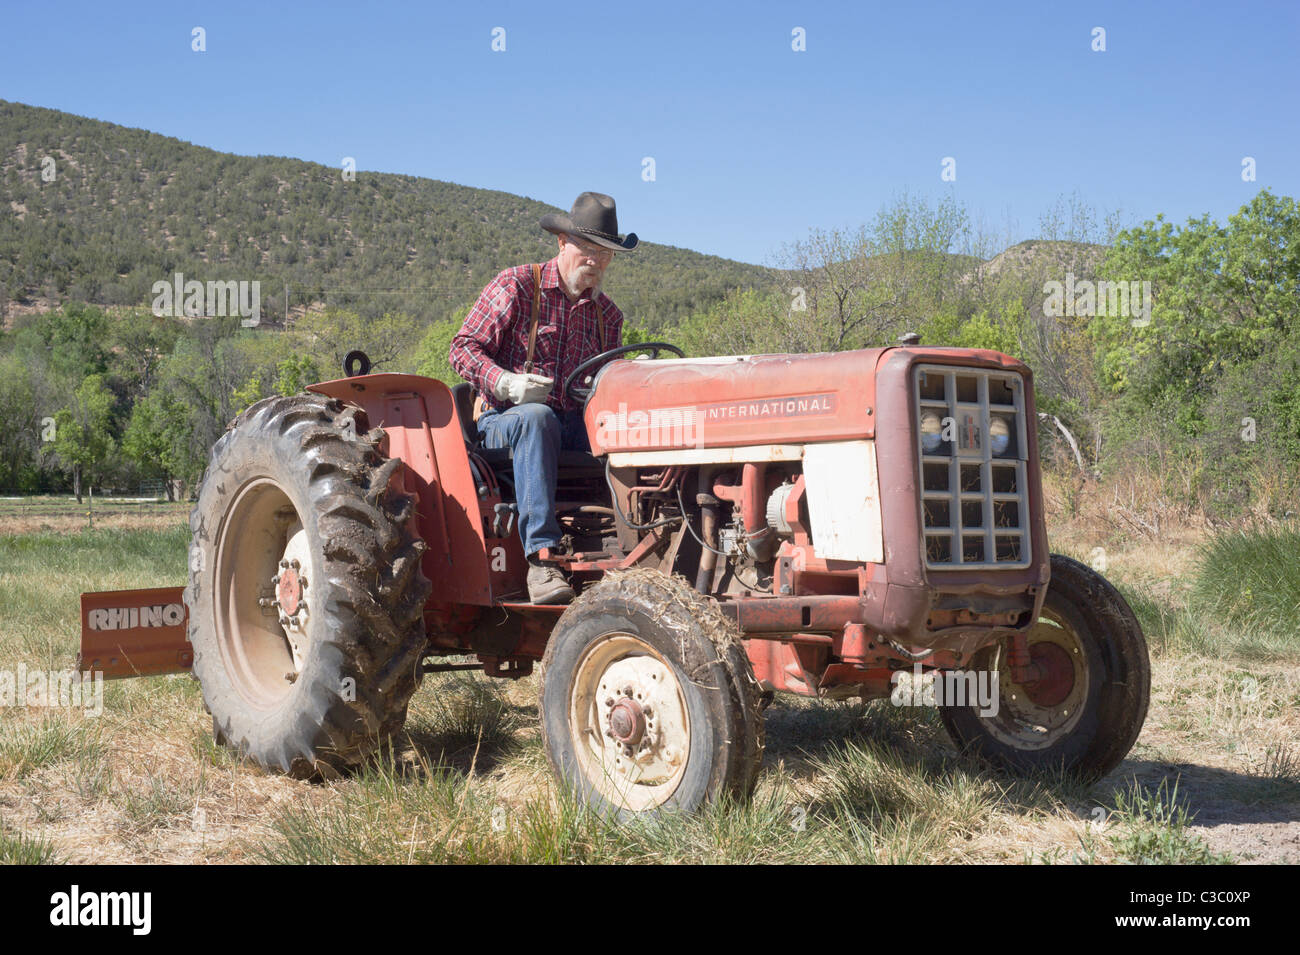 American farmer and rancher prepares the soil for spring planting, in the Hondo Valley, New Mexico. - Stock Image